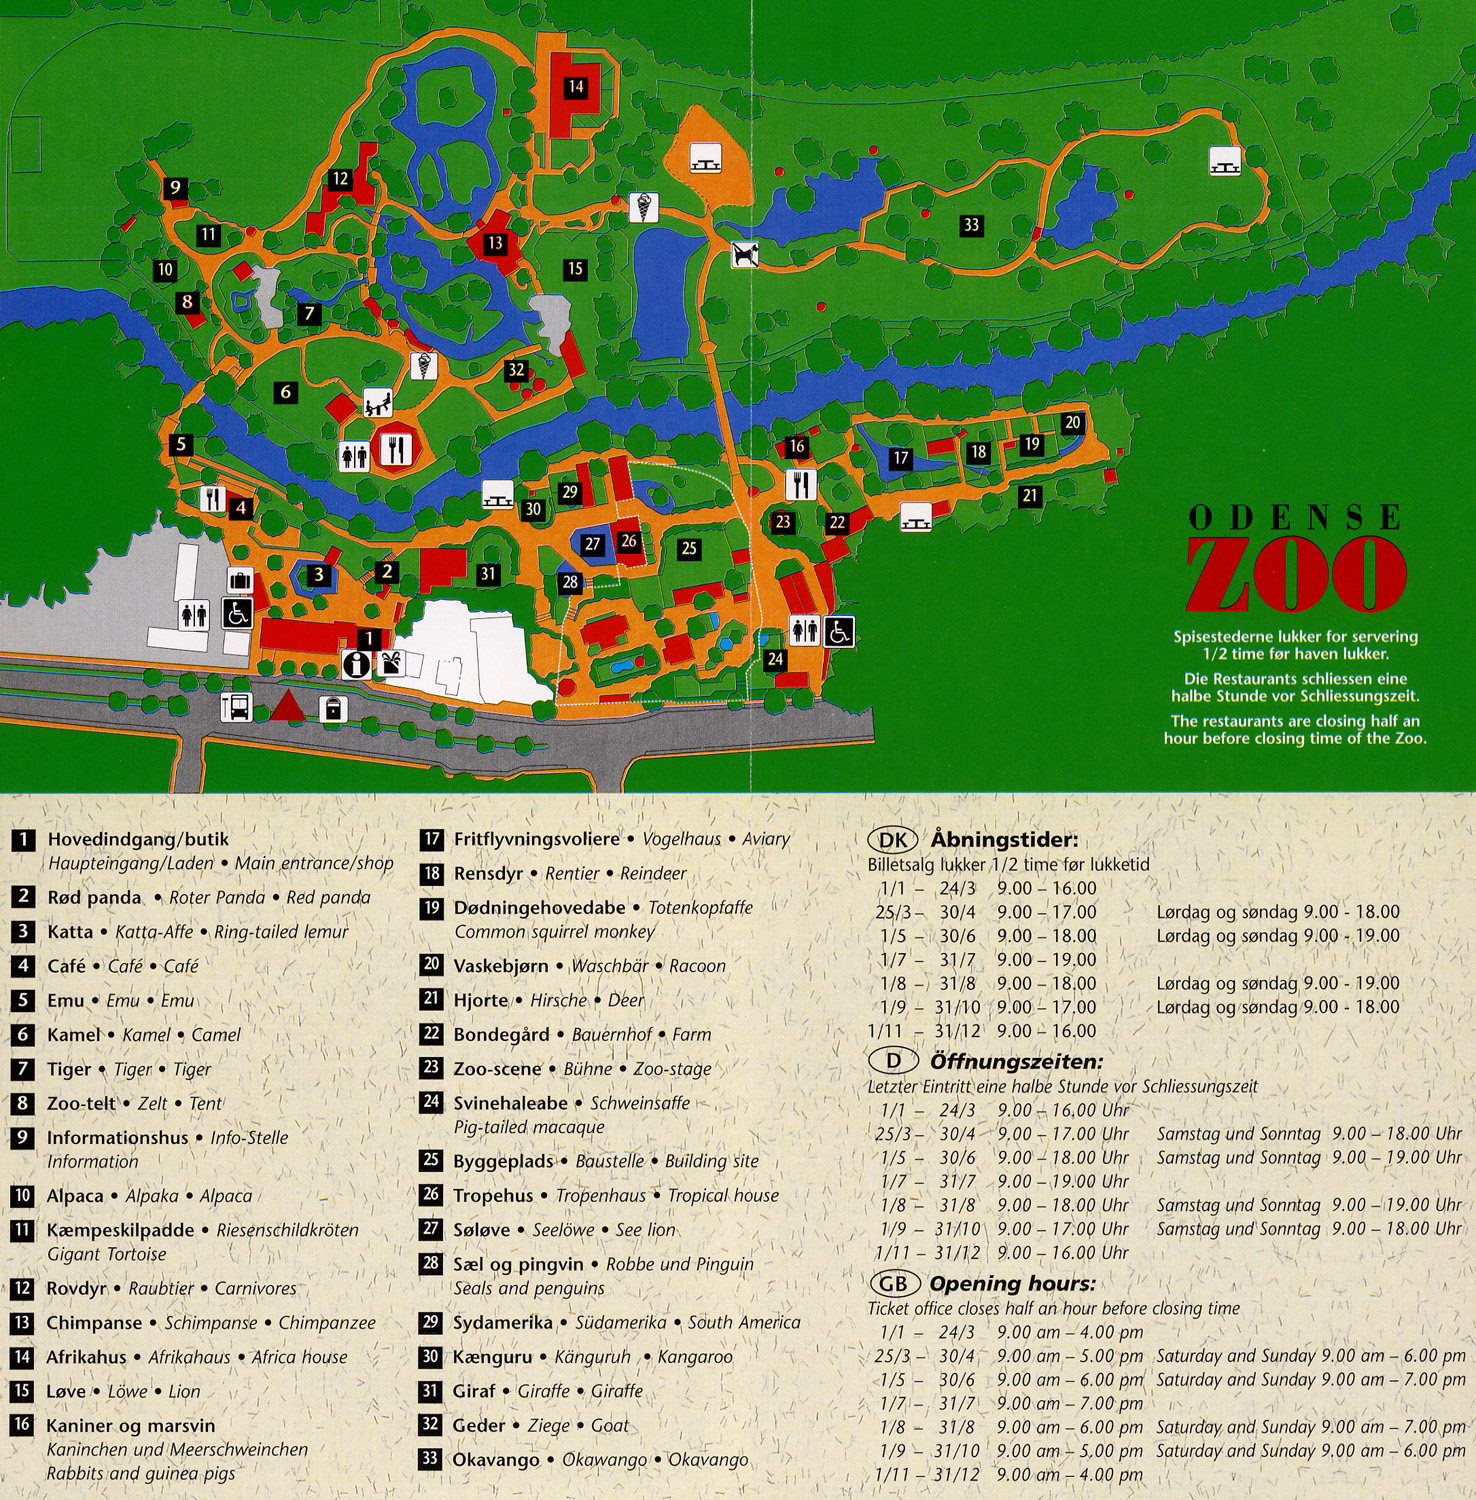 søger fisse zoo map odense